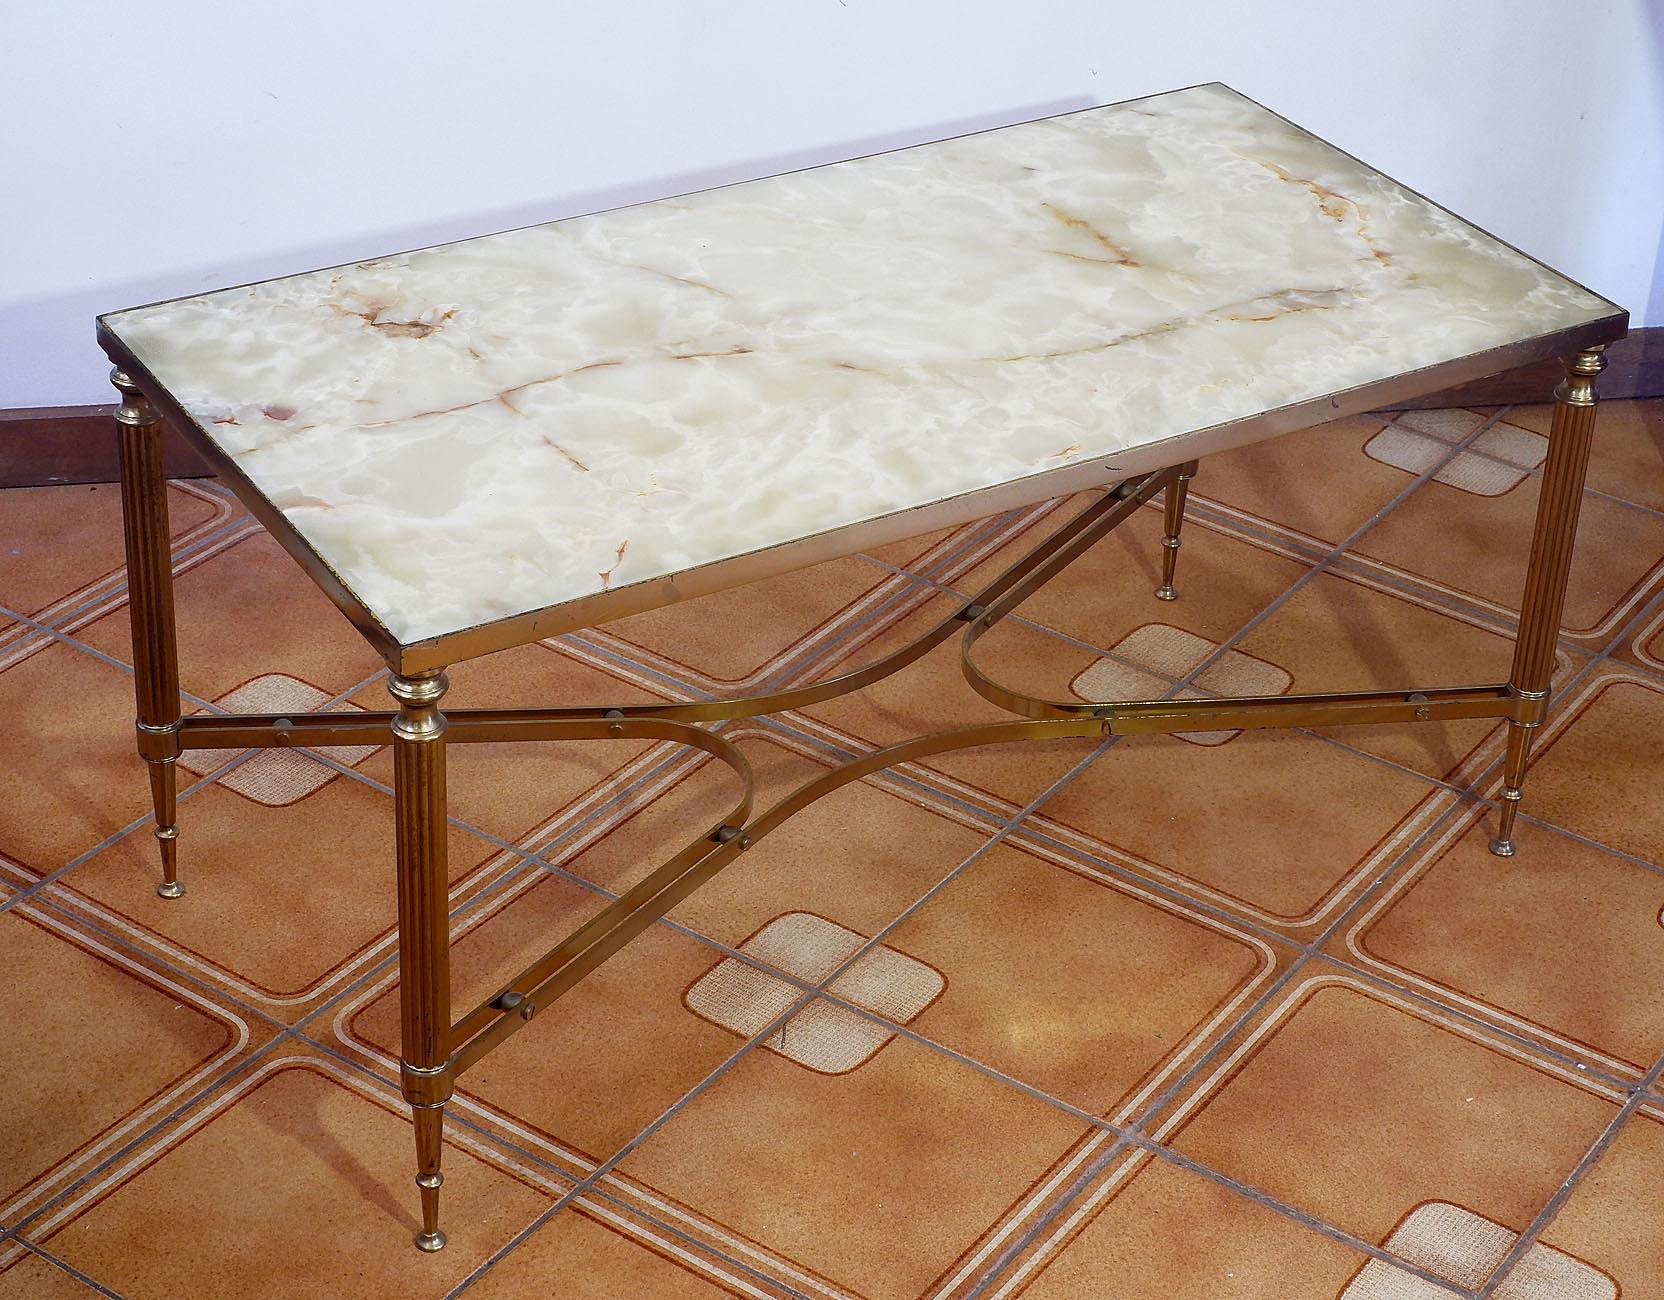 'Retro Chic Brass and Onyx Coffee Table'